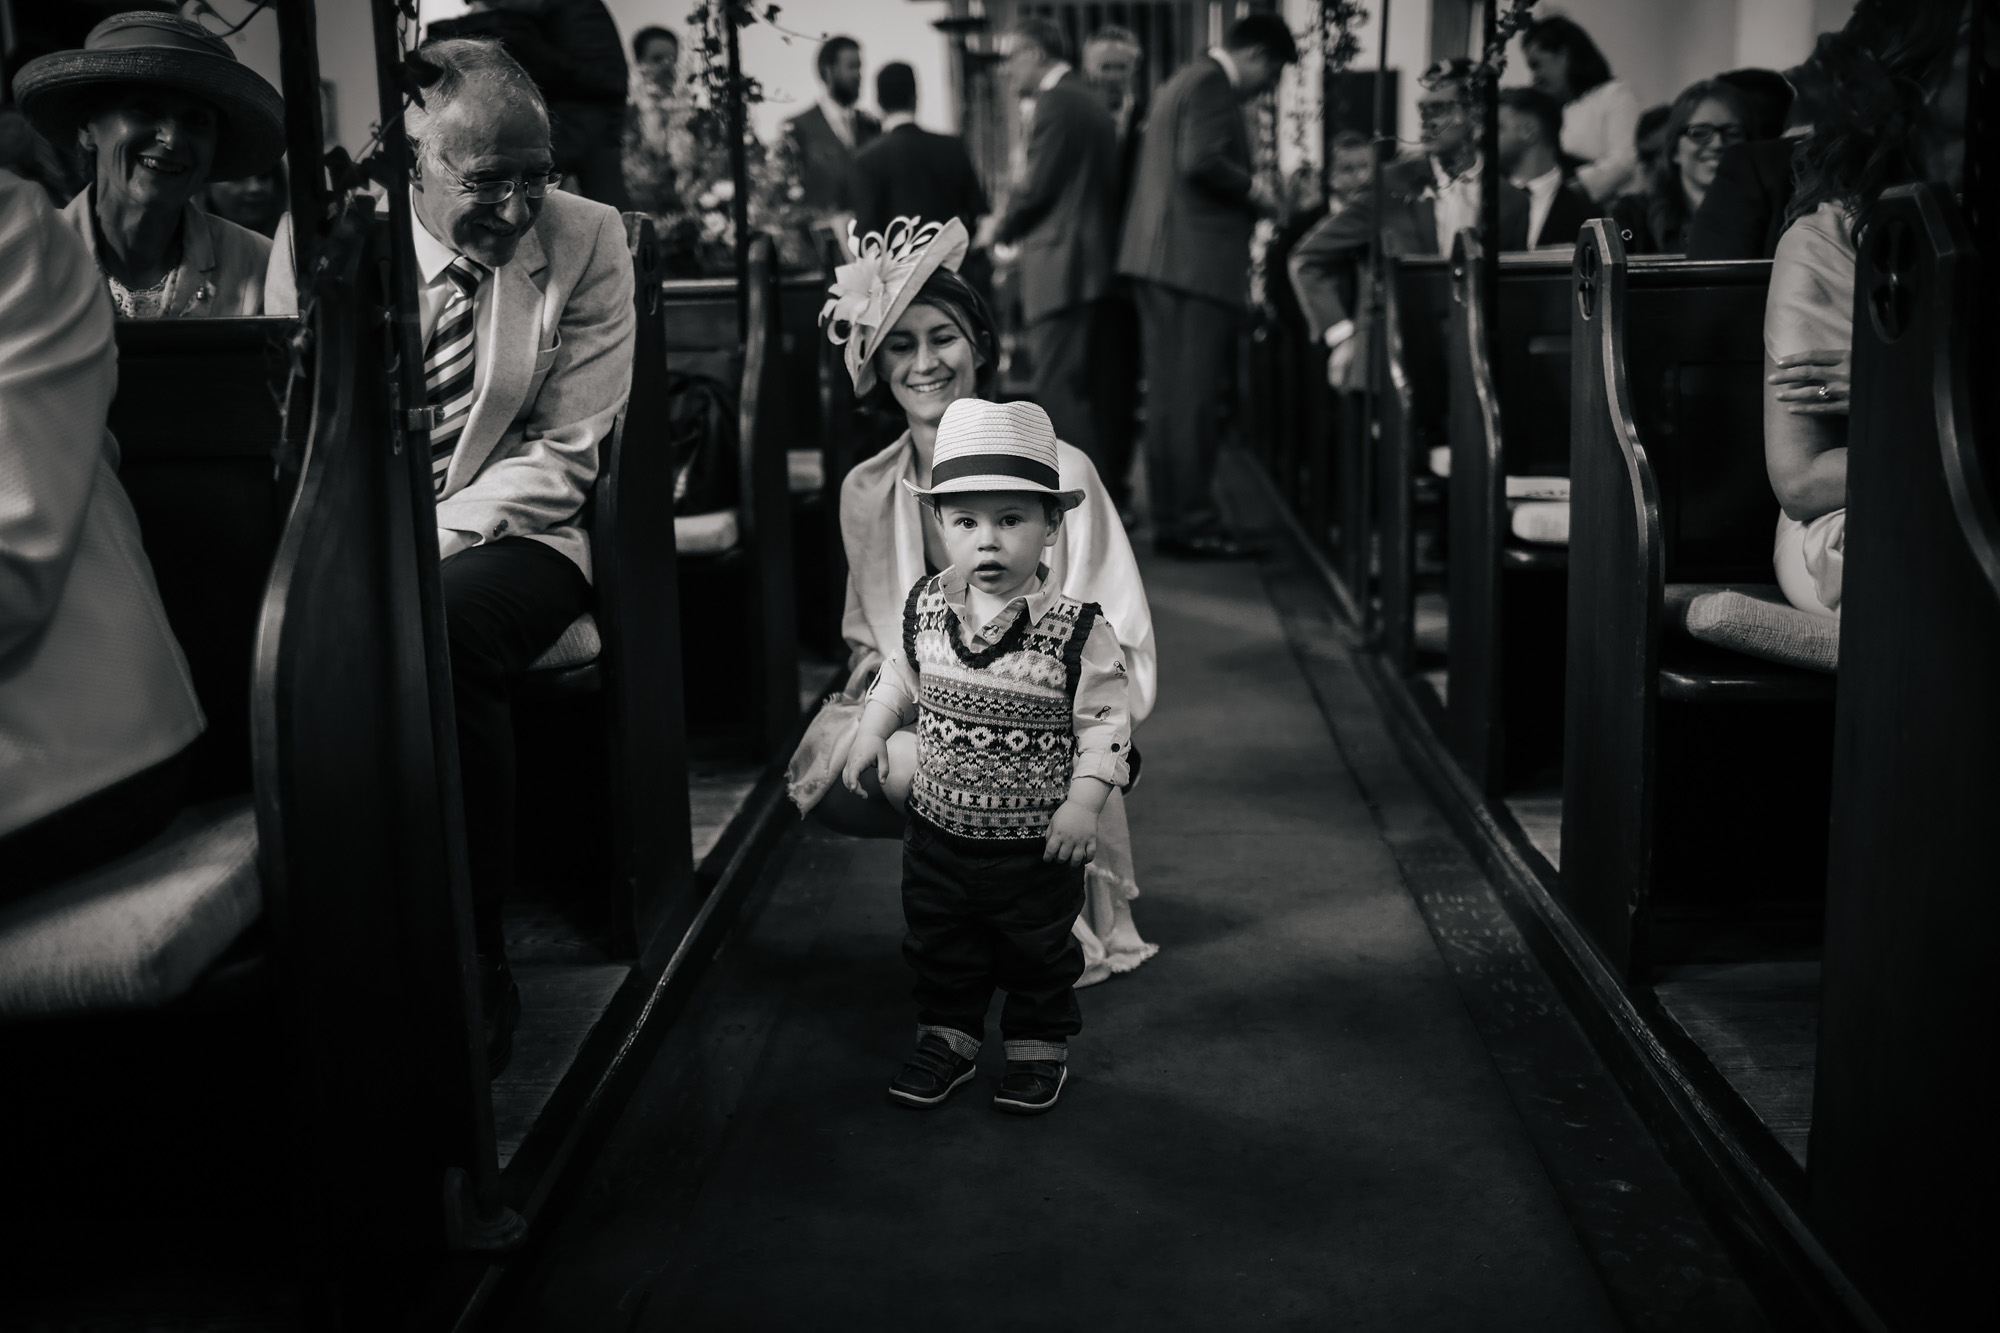 Boy with a hat in the church aisle during the wedding